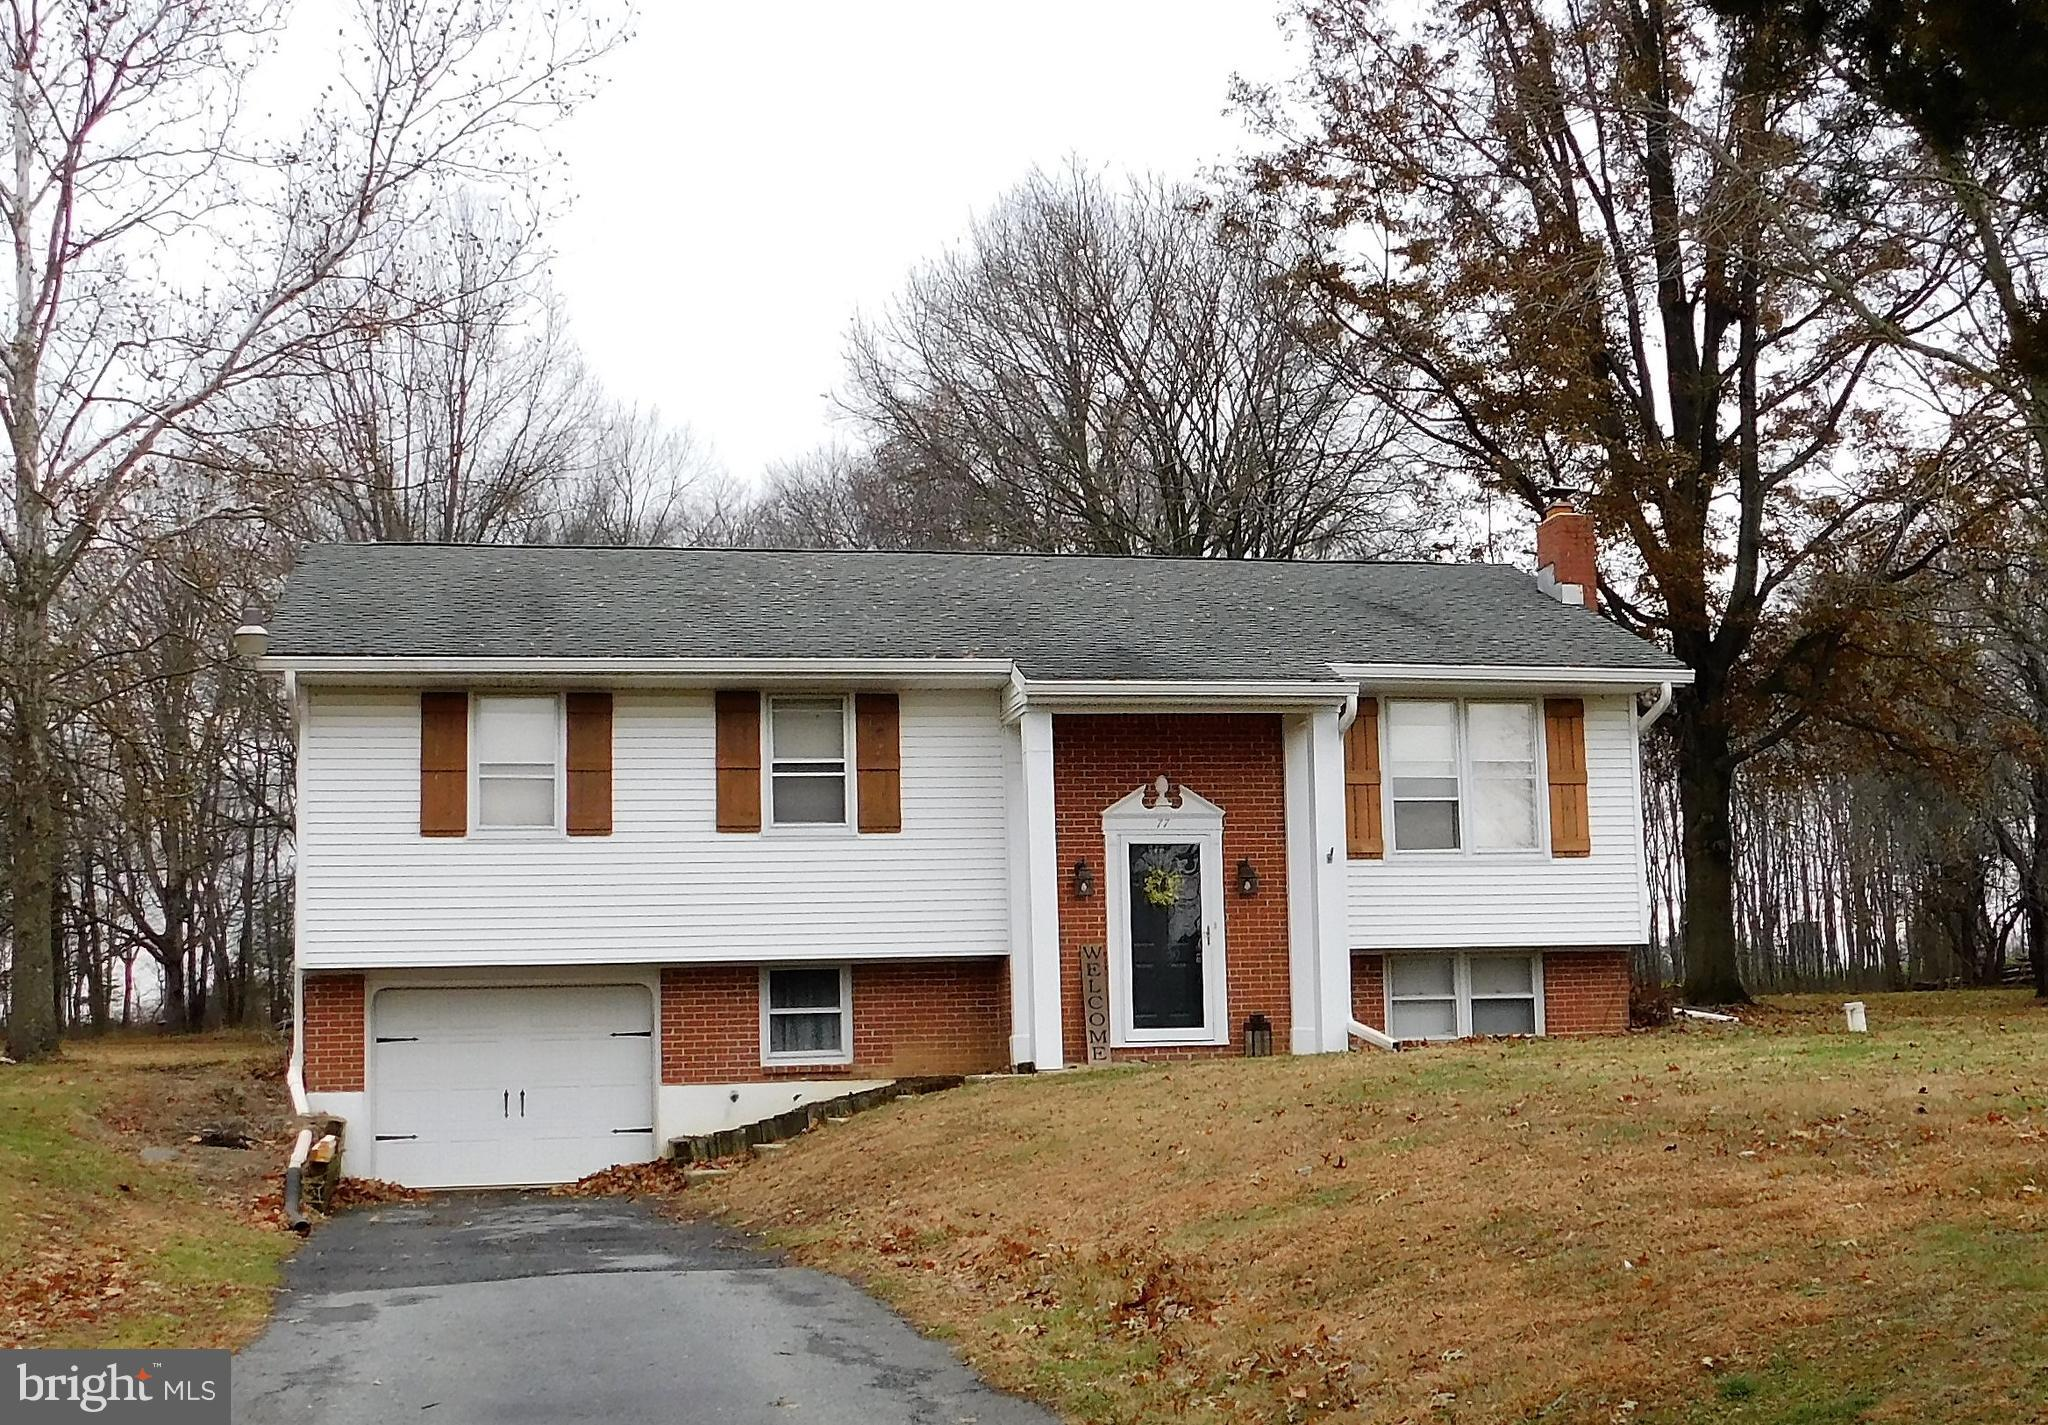 Large Bi-Level home on a cul-de-sac sits on 1.67 acres.  Sold with lot to the left of the home  - an